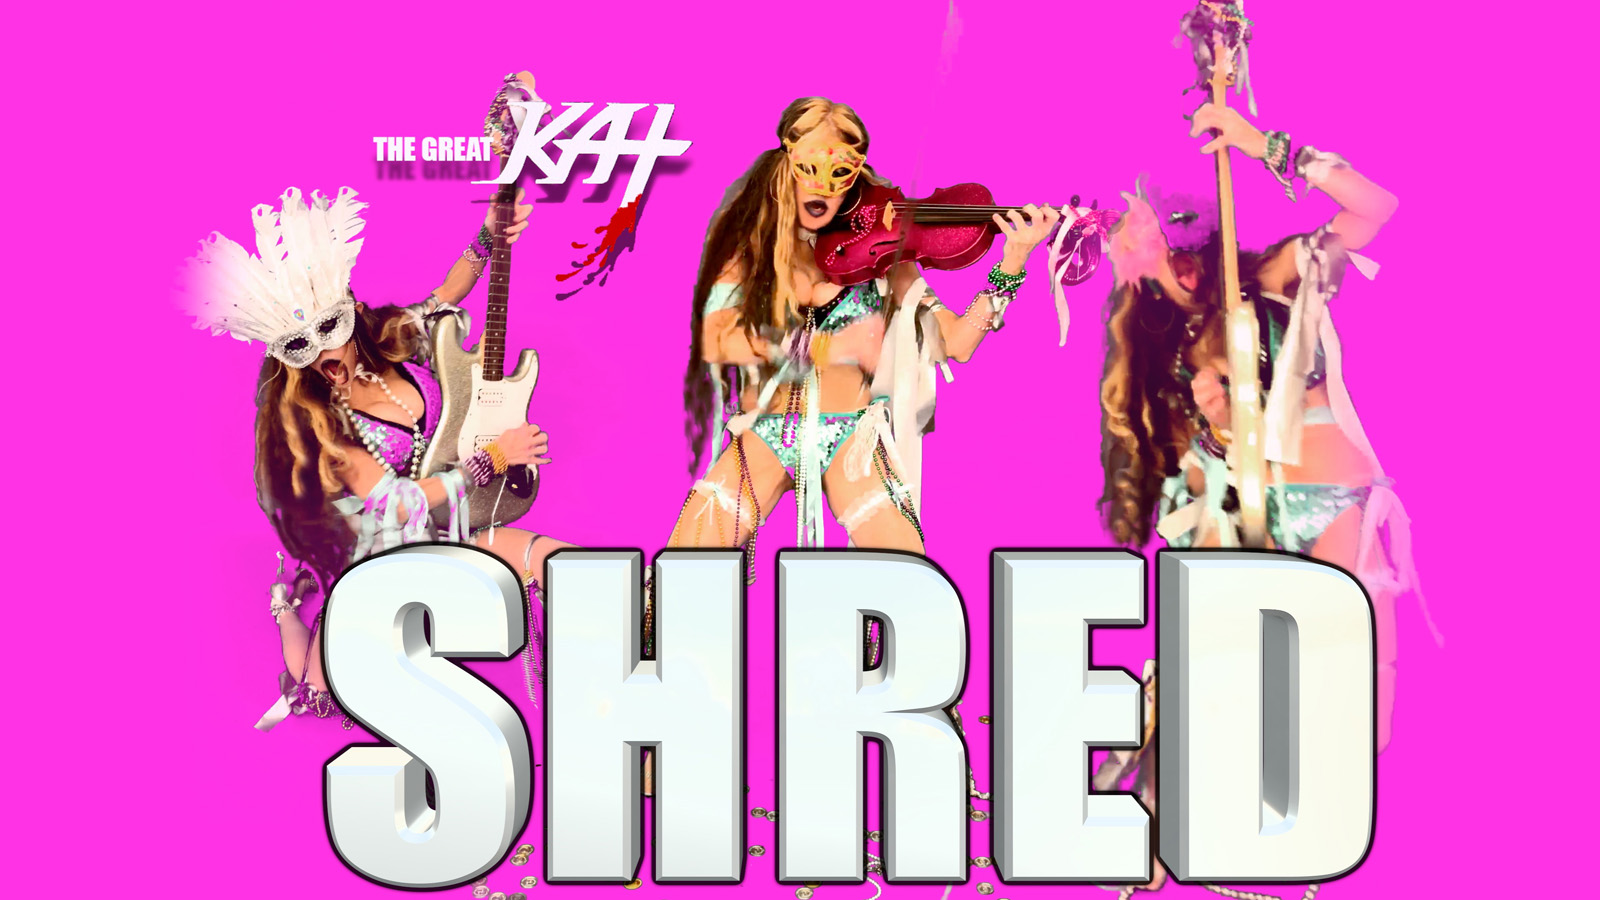 THE GREAT KAT! SHRED!